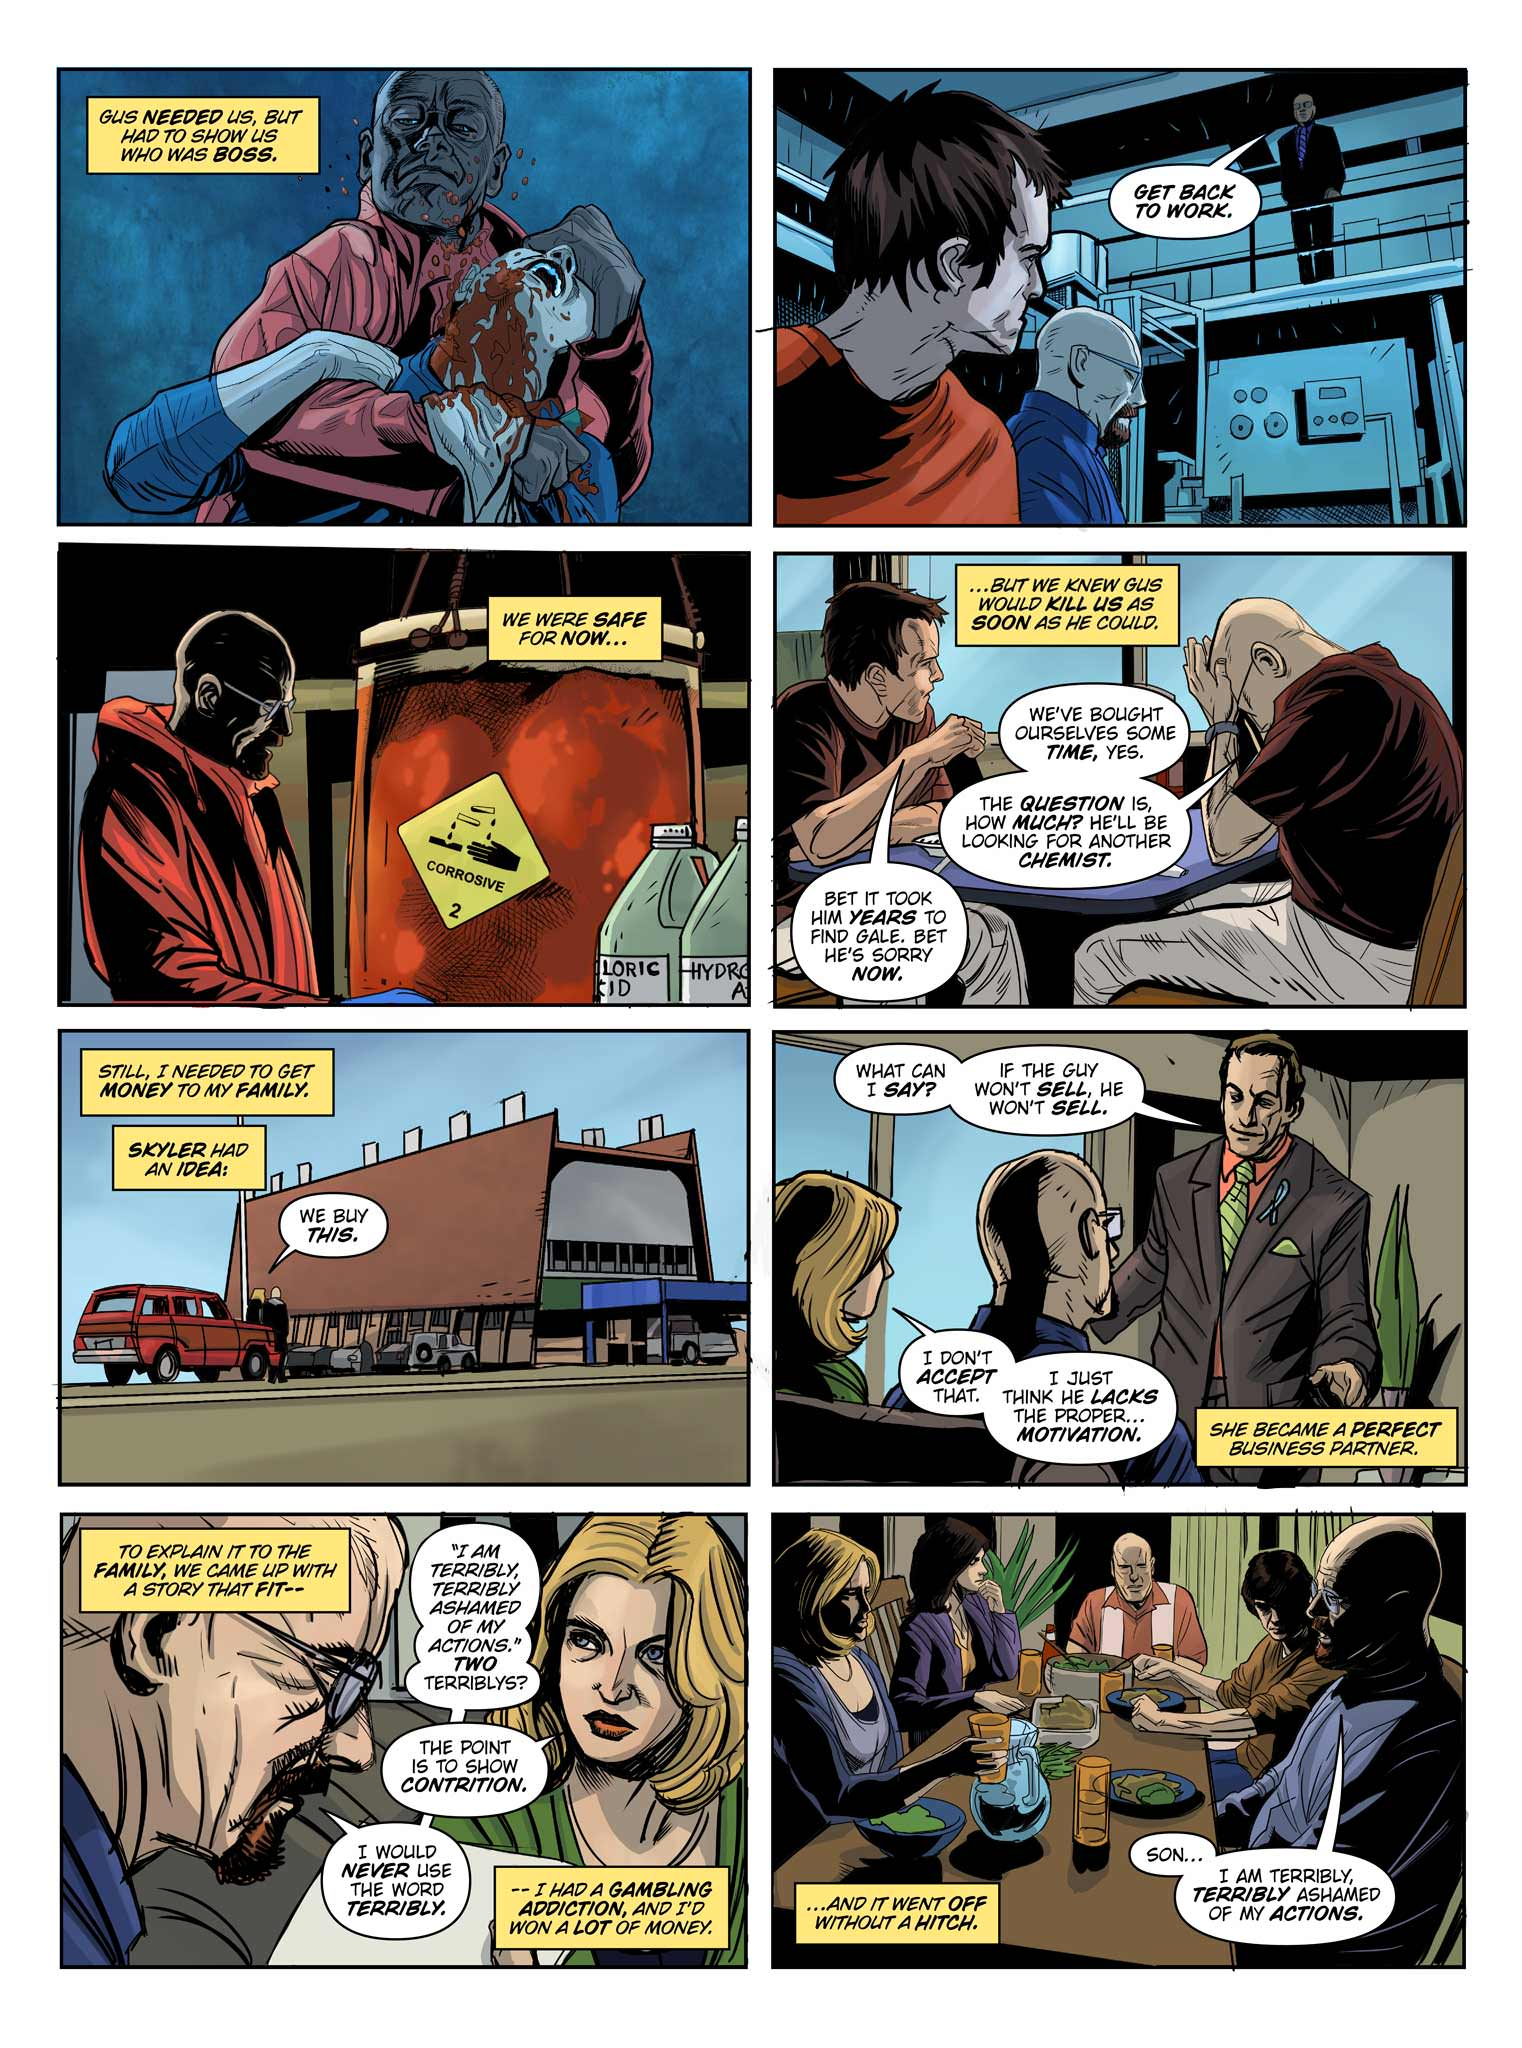 Read online Breaking Bad: All Bad Things comic -  Issue # Full - 14